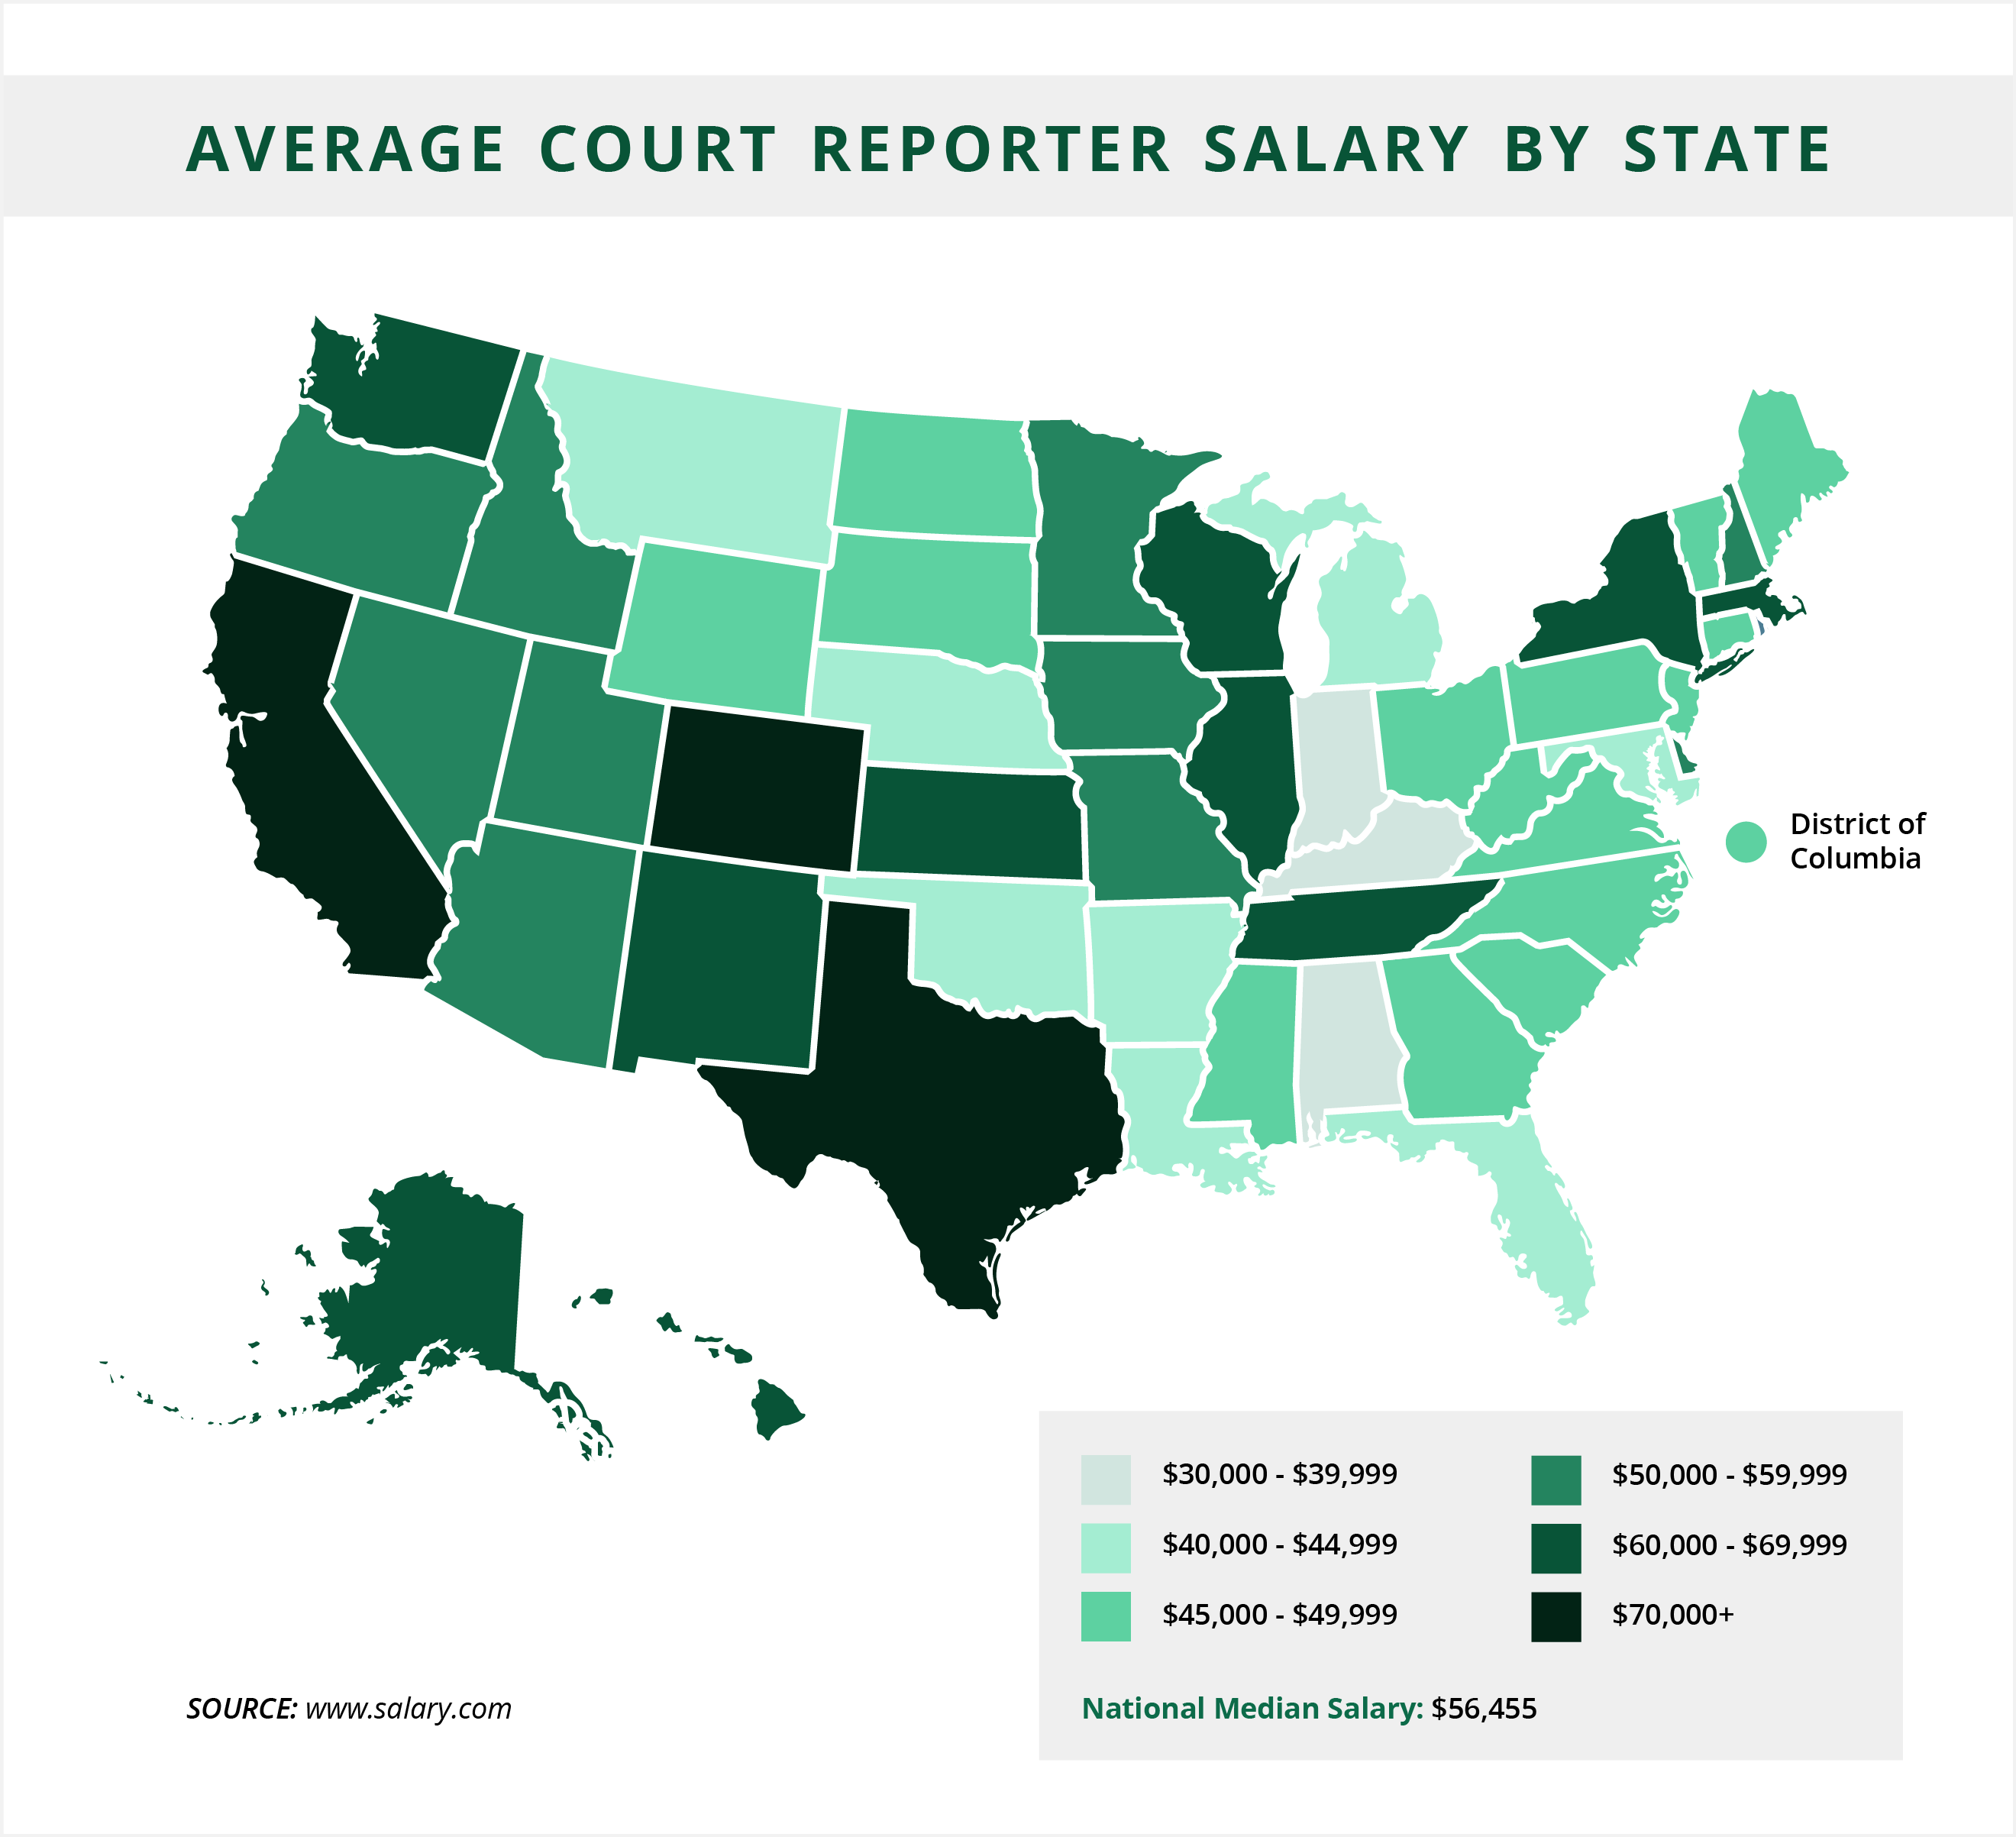 Average Court Reporter Salary by State